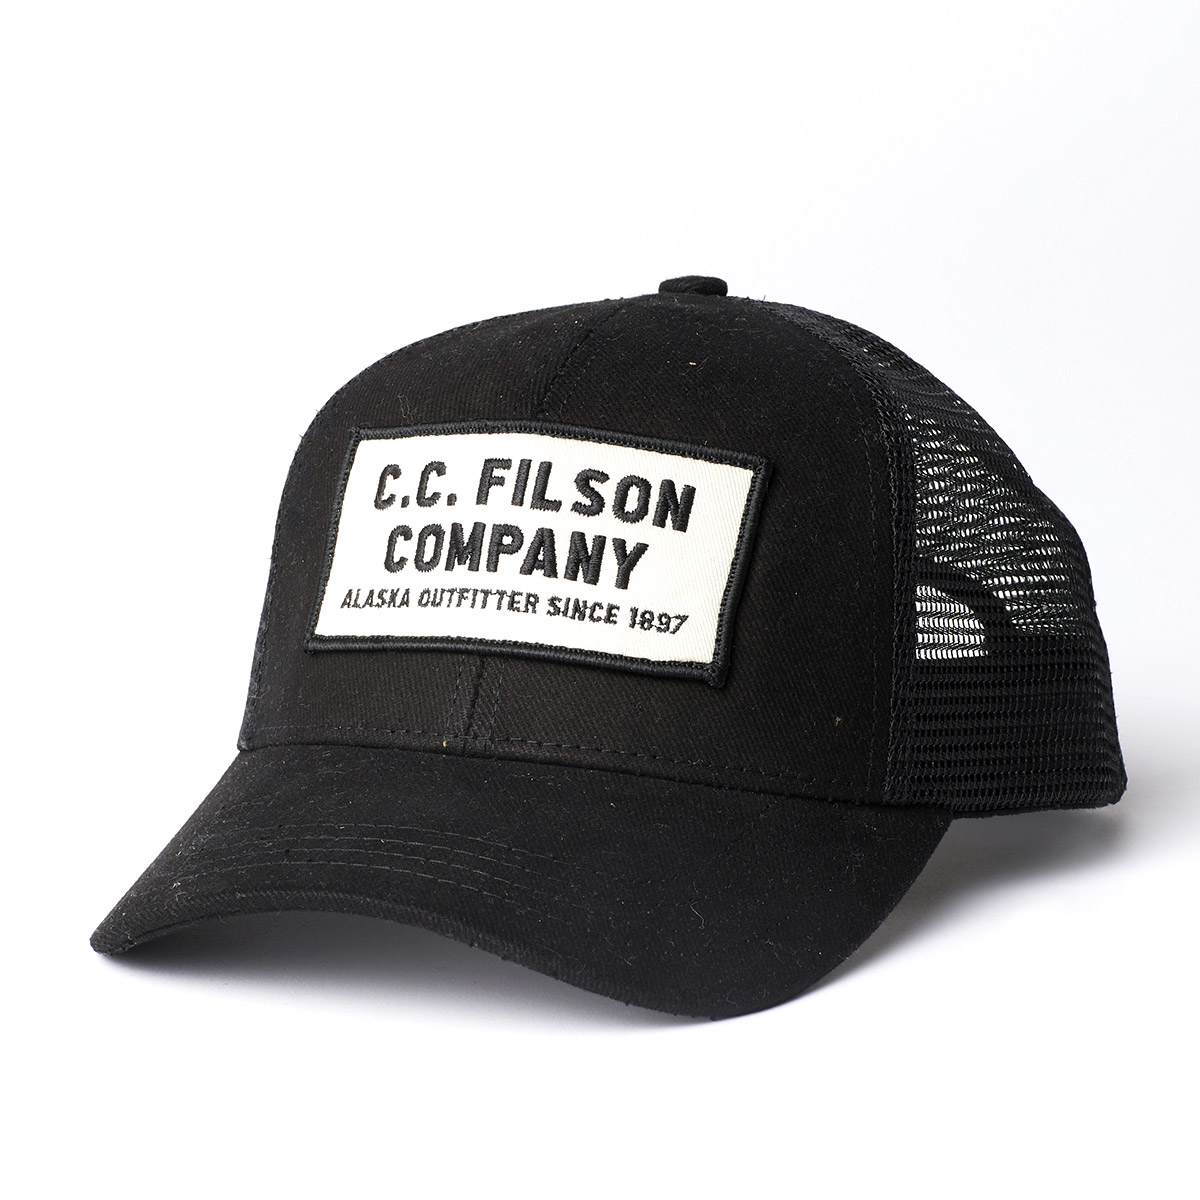 Filson Mesh Snap-Back Logger Cap-Black, Robustes 6 Panel Logger Cap mit Mesh Panels für optimale Belüftung